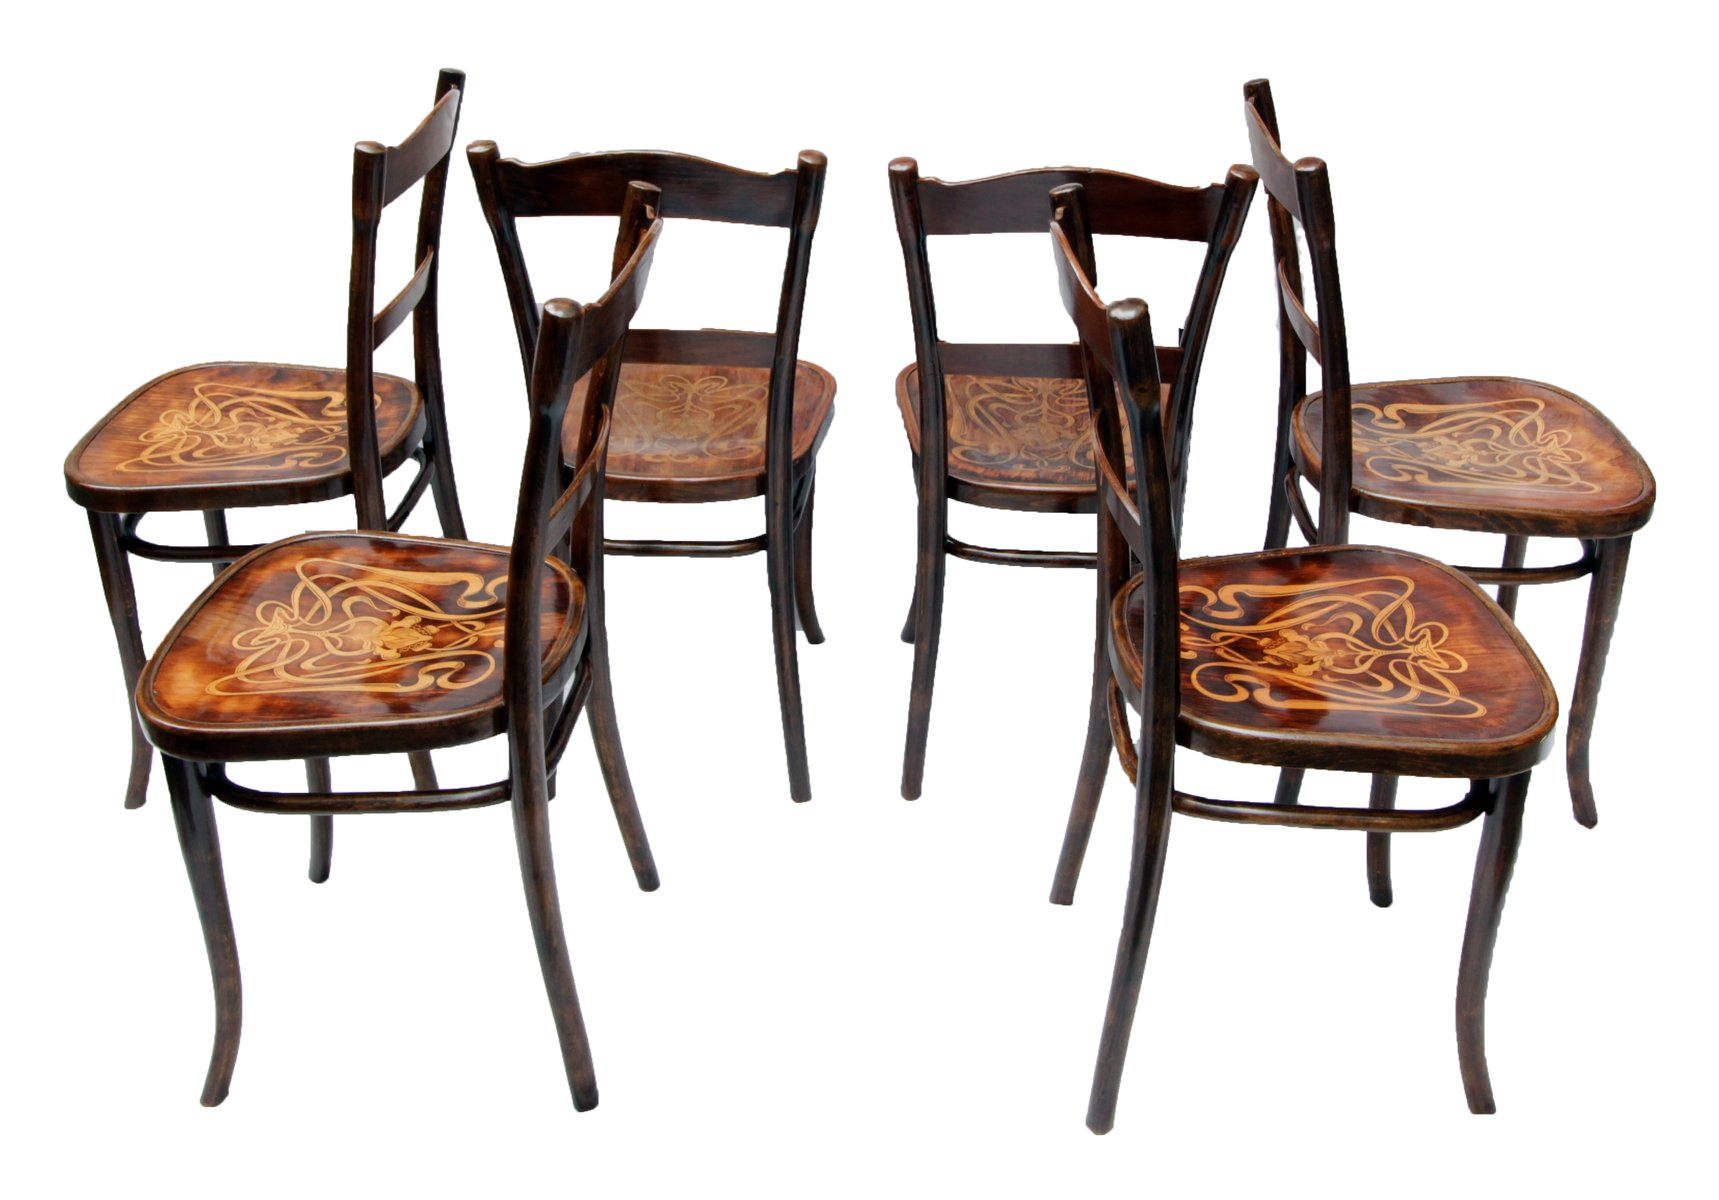 Exceptionnel Antique Decorated Bentwood Dining Chairs From Thonet, Set Of 6